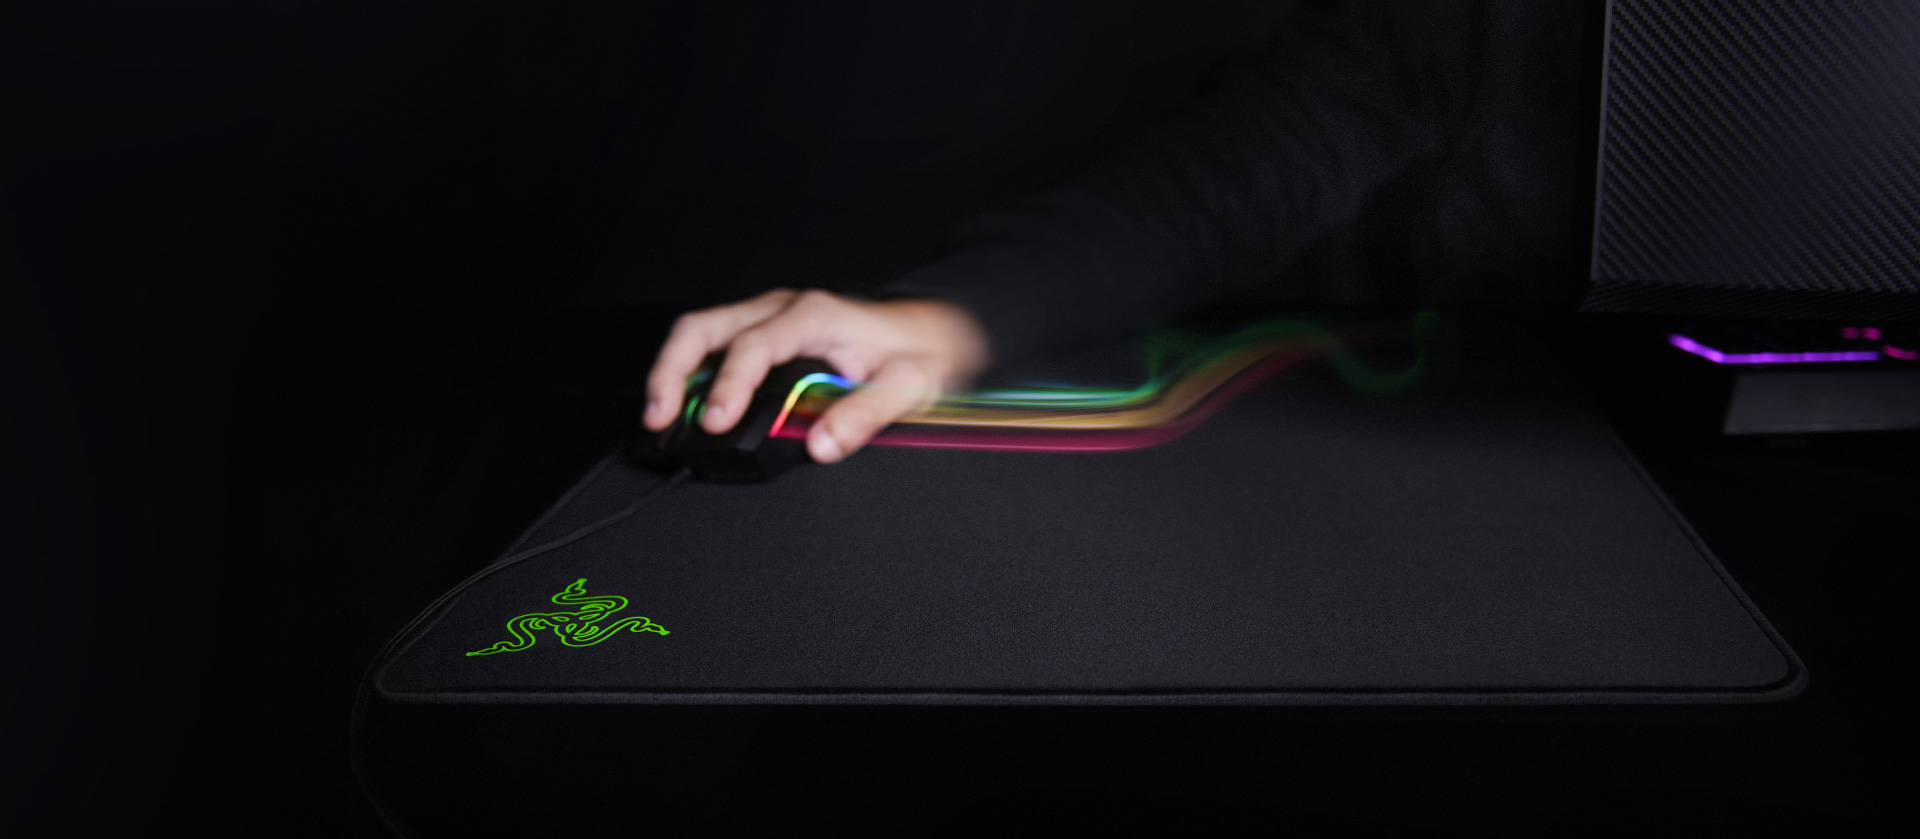 razer-gigantus-hero-new